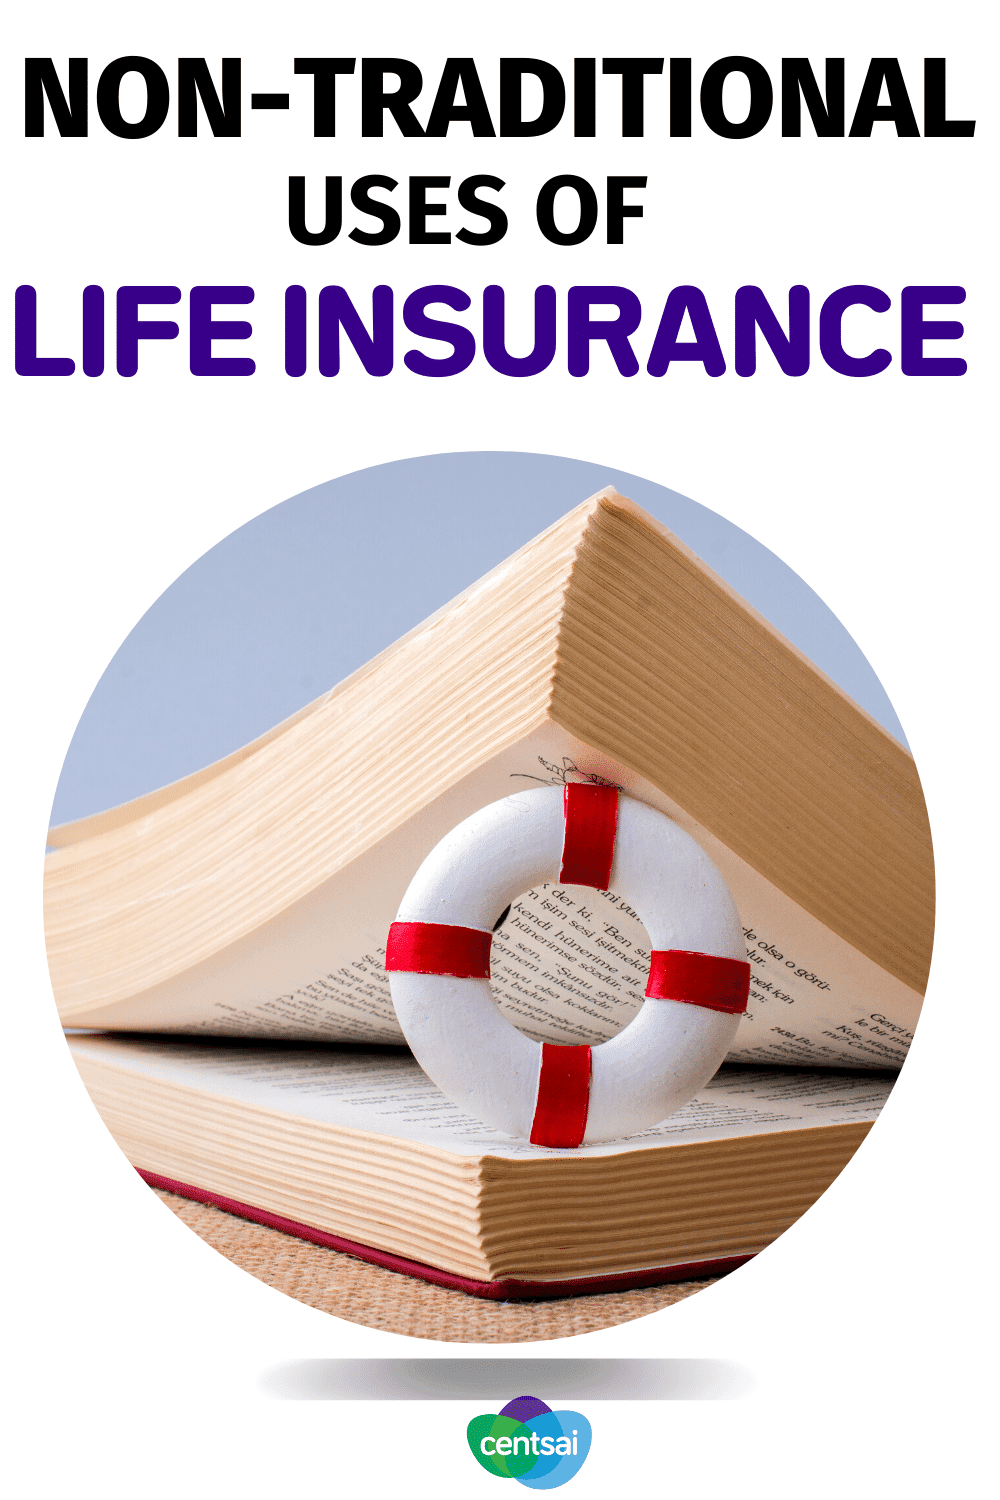 Non-Traditional Uses of Life Insurance